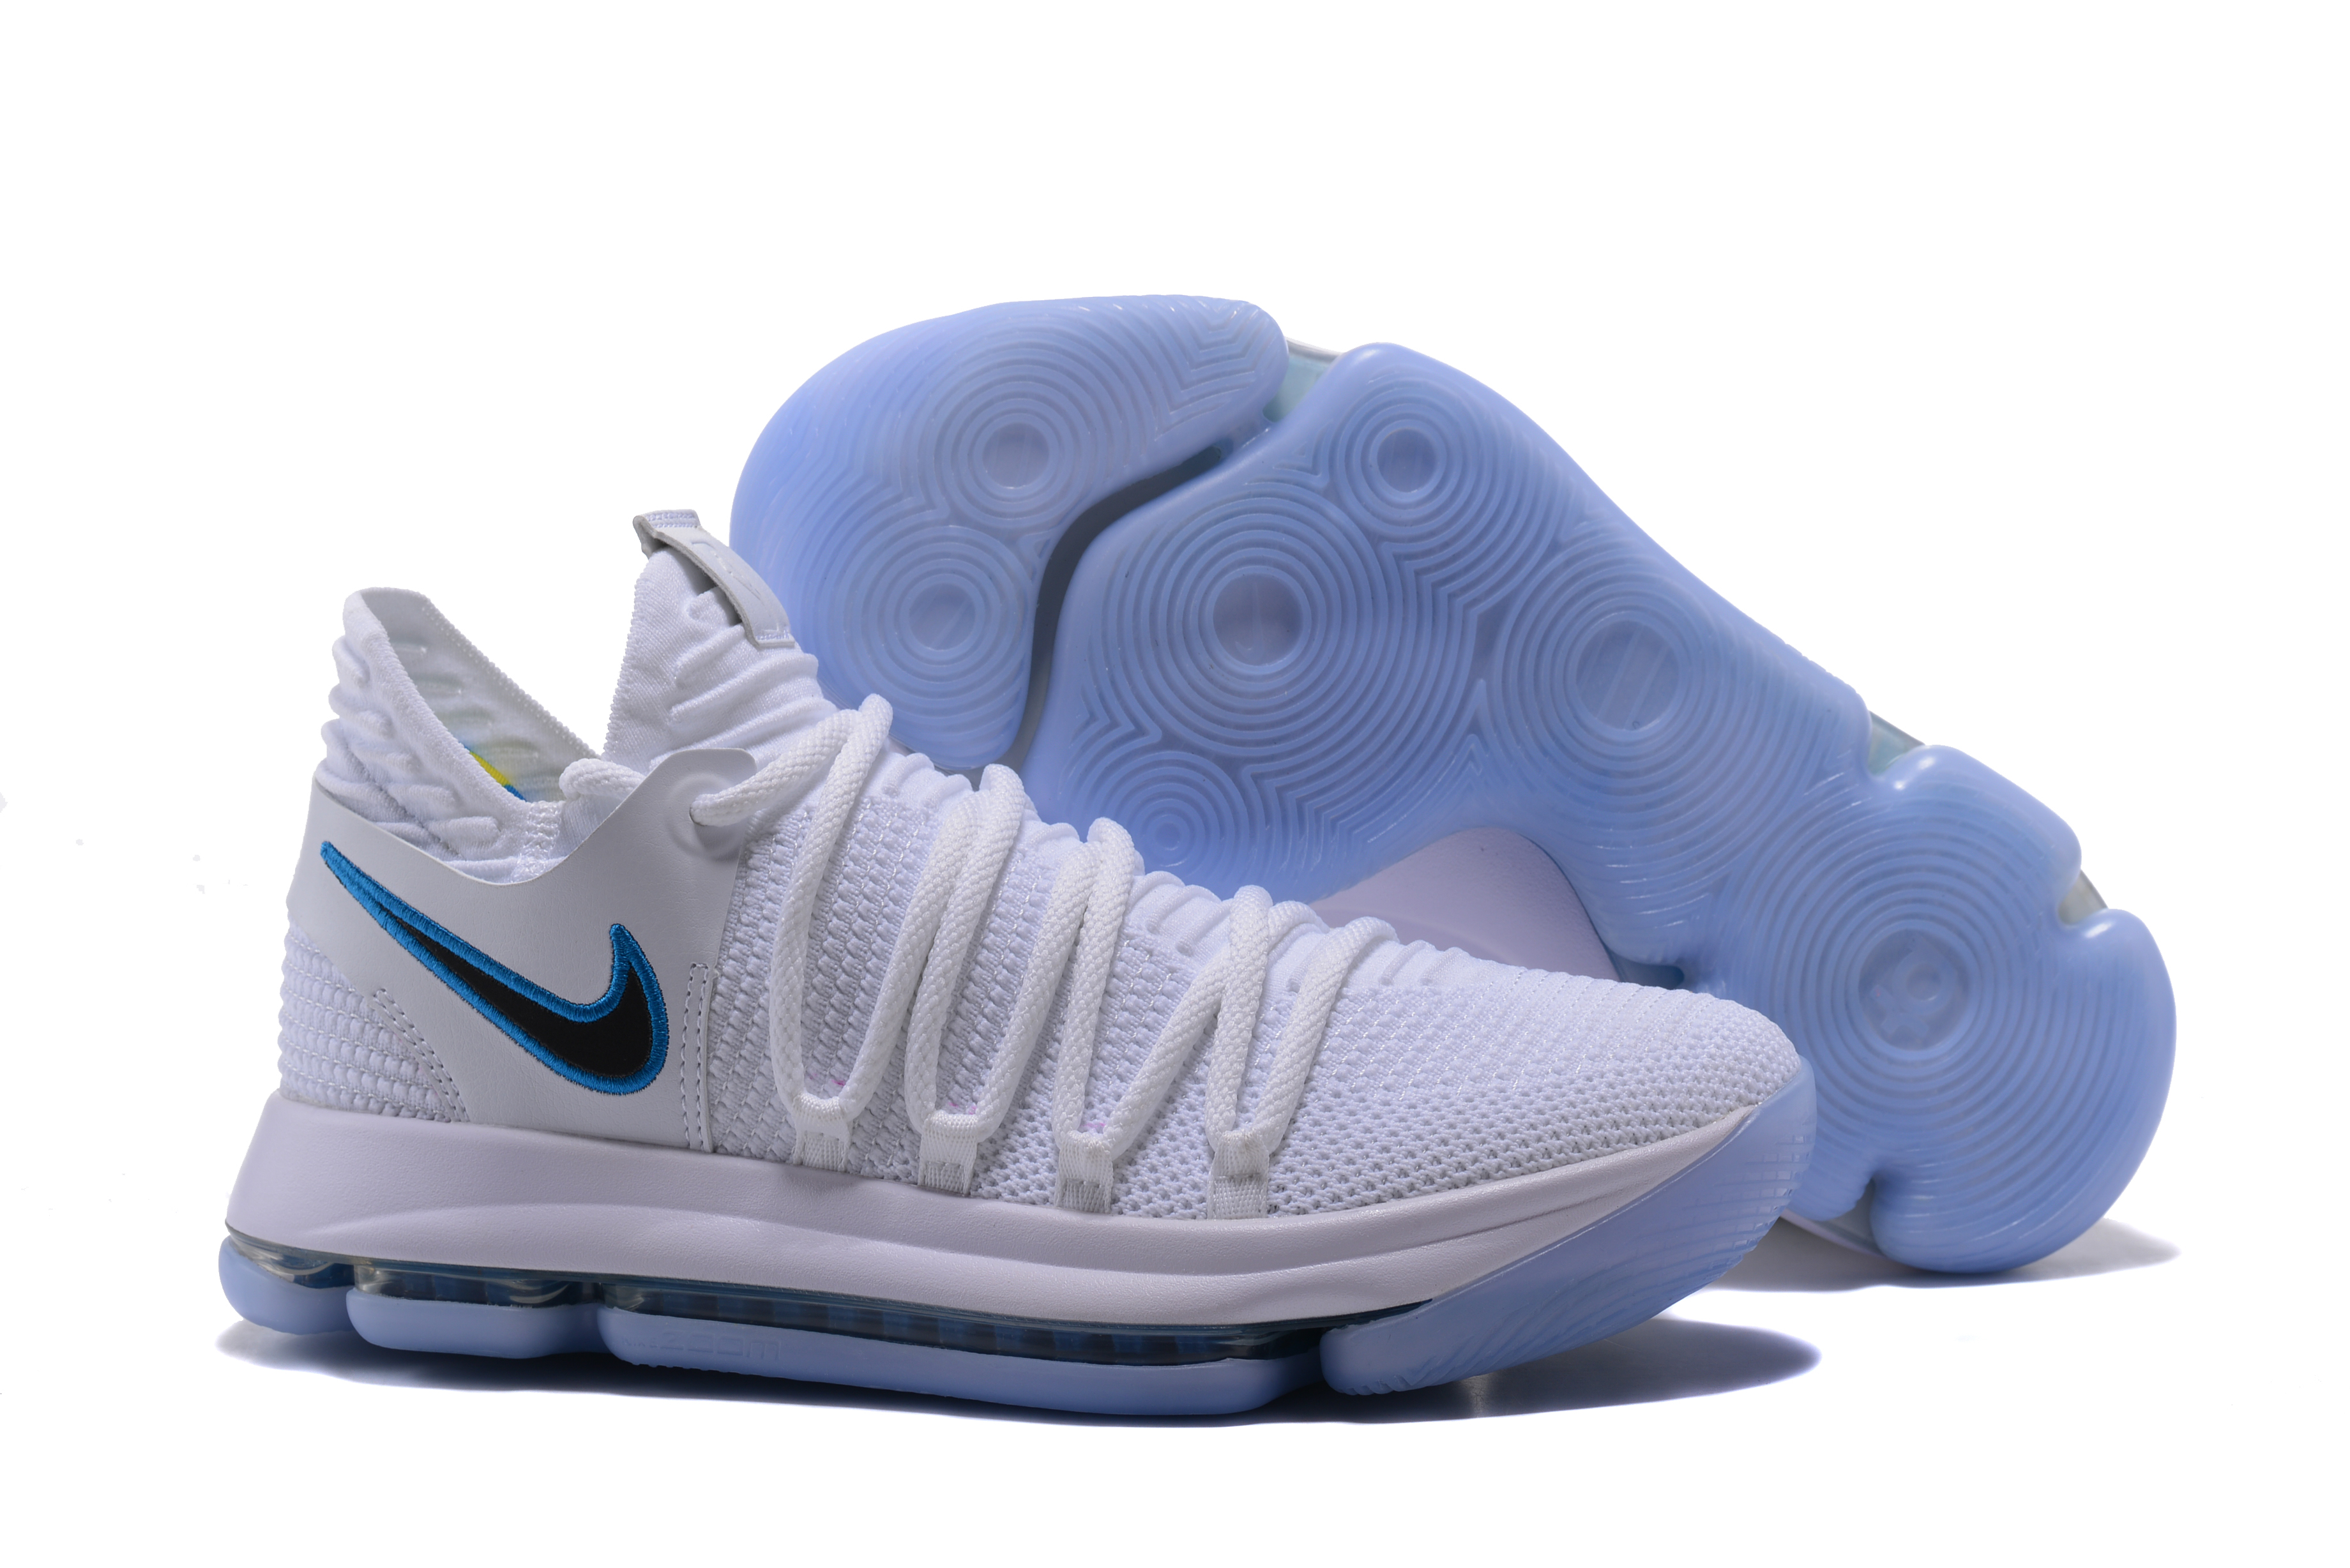 New Nike KD 10 Finals Champion Shoes